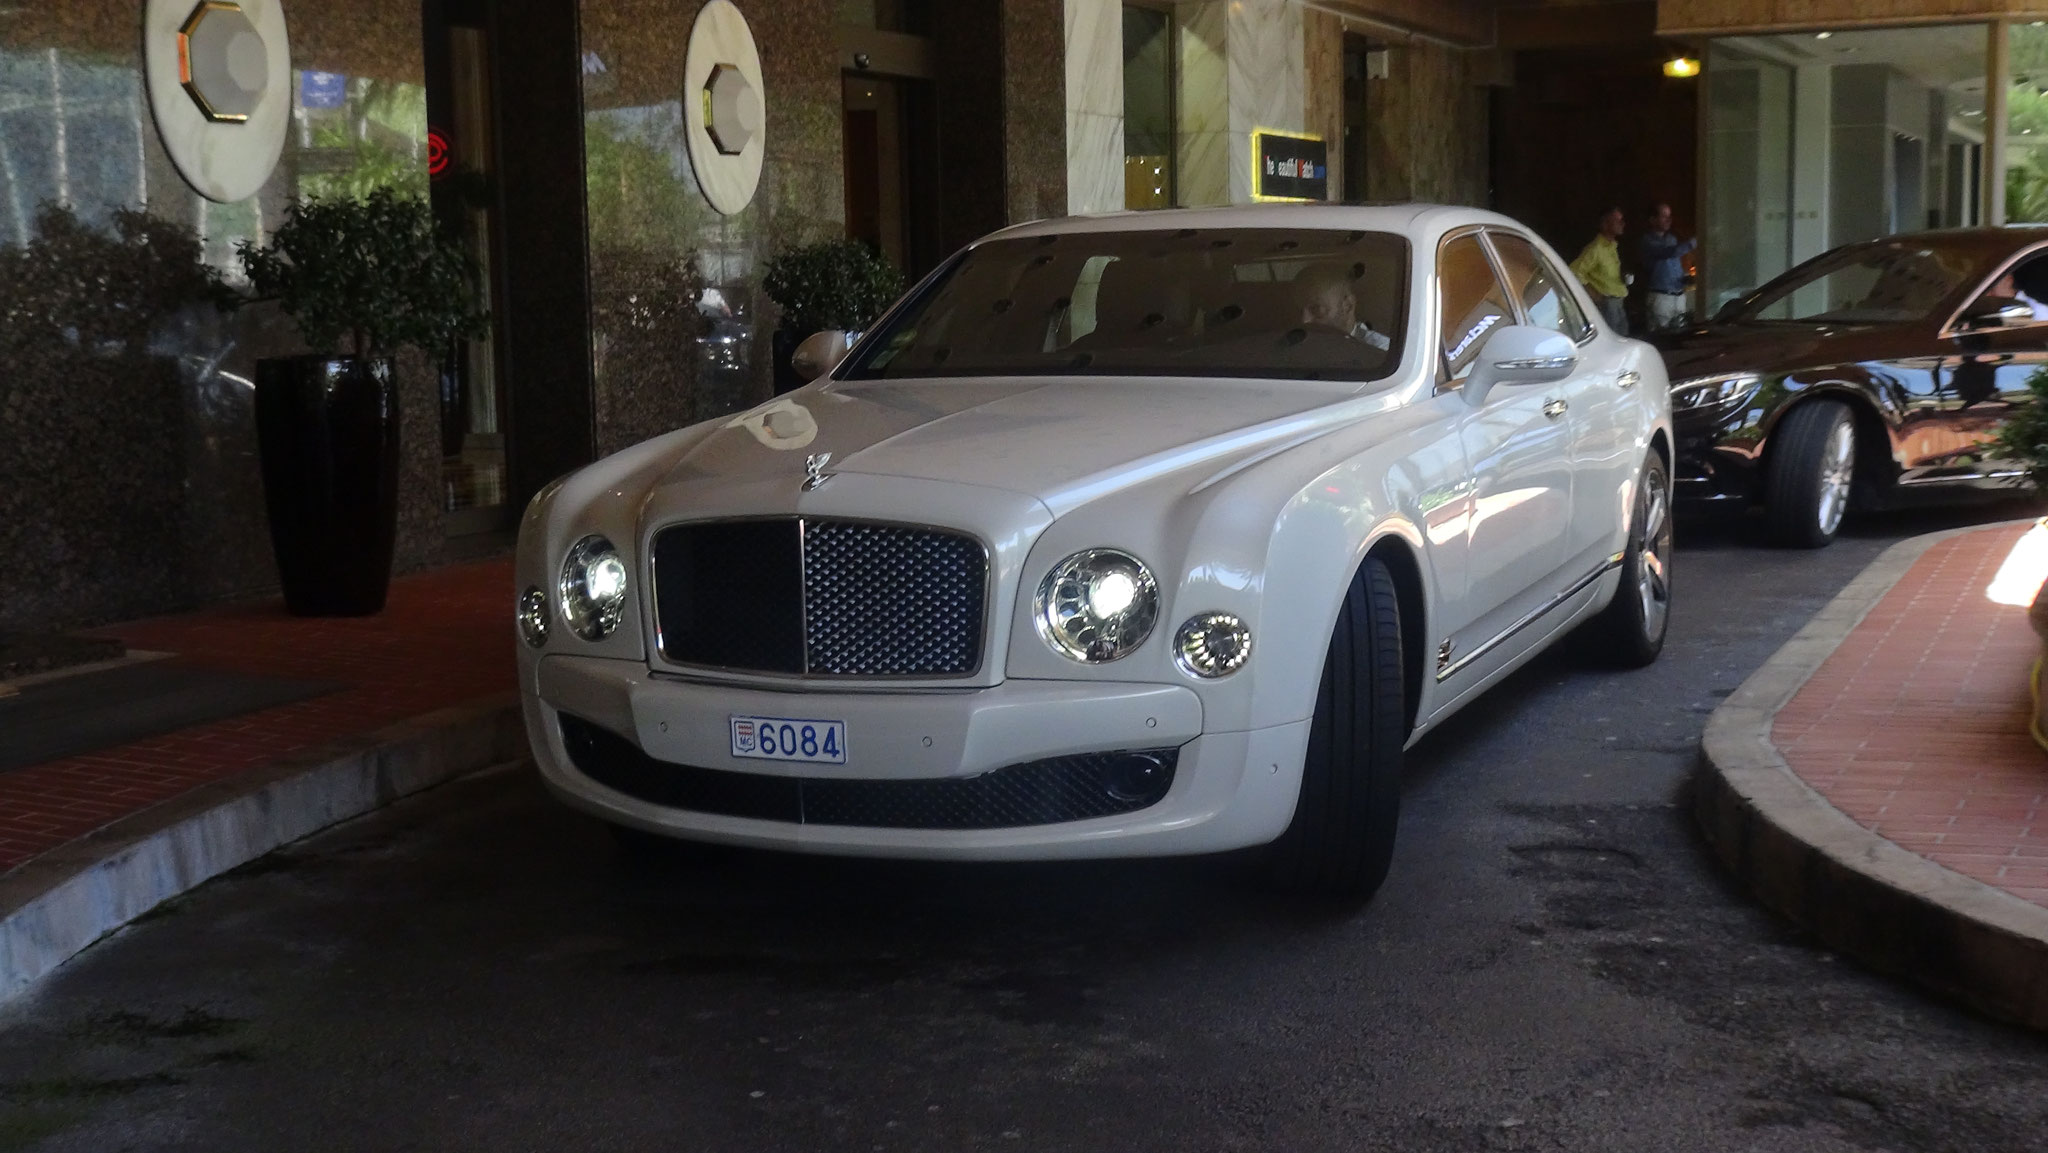 Bentley Mulsanne - 6084 (MC)